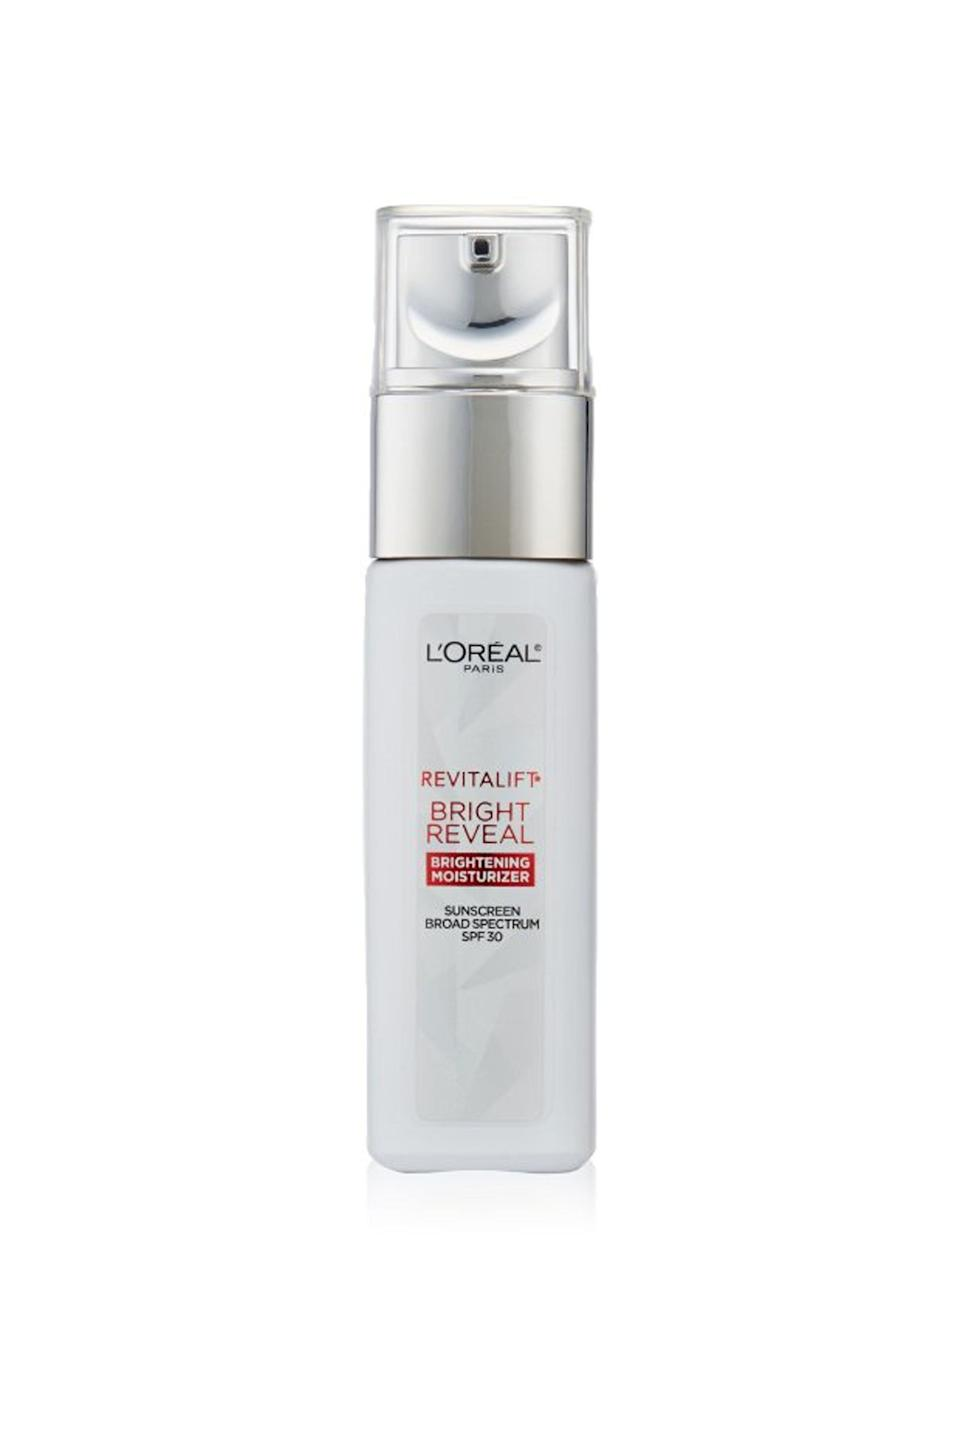 """<p><strong>L'Oréal Paris</strong></p><p>amazon.com</p><p><strong>$19.99</strong></p><p><a href=""""https://www.amazon.com/dp/B01F7SUHIO?tag=syn-yahoo-20&ascsubtag=%5Bartid%7C10055.g.32906564%5Bsrc%7Cyahoo-us"""" rel=""""nofollow noopener"""" target=""""_blank"""" data-ylk=""""slk:Shop Now"""" class=""""link rapid-noclick-resp"""">Shop Now</a></p><p>The best of the GH Beauty Lab's anti-aging day cream test, L'Oréal topped Lab and tester assessments for tackling top skin concerns: reducing <a href=""""https://www.goodhousekeeping.com/beauty/anti-aging/g29323401/best-dark-spot-corrector/"""" rel=""""nofollow noopener"""" target=""""_blank"""" data-ylk=""""slk:UV spots"""" class=""""link rapid-noclick-resp"""">UV spots</a>, evening tone, and moisturizing. In Lab measurements, the vitamin C and <a href=""""https://www.goodhousekeeping.com/beauty/anti-aging/a31155061/what-does-glycolic-acid-do/"""" rel=""""nofollow noopener"""" target=""""_blank"""" data-ylk=""""slk:glycolic acid"""" class=""""link rapid-noclick-resp"""">glycolic acid</a> cream <strong>increased skin's moisture levels by 28% and reduced hyperpigmentation spots by 11% in four weeks</strong>. Testers found it absorbed fast and left a silky finish. """"My skin stayed hydrated throughout the day,"""" a user commented.</p>"""